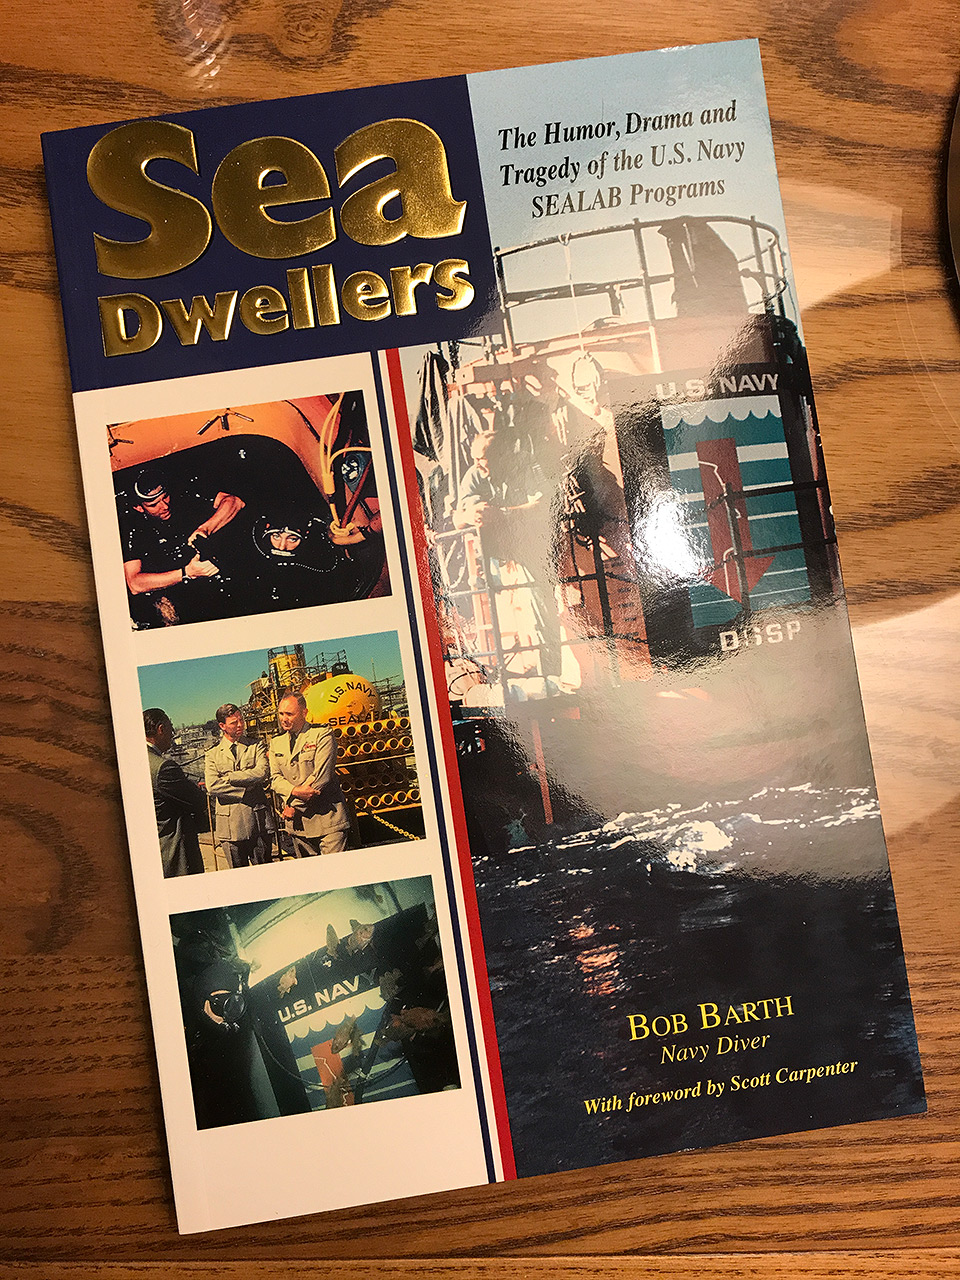 171022-bob-barth-sea-dweller-book-01